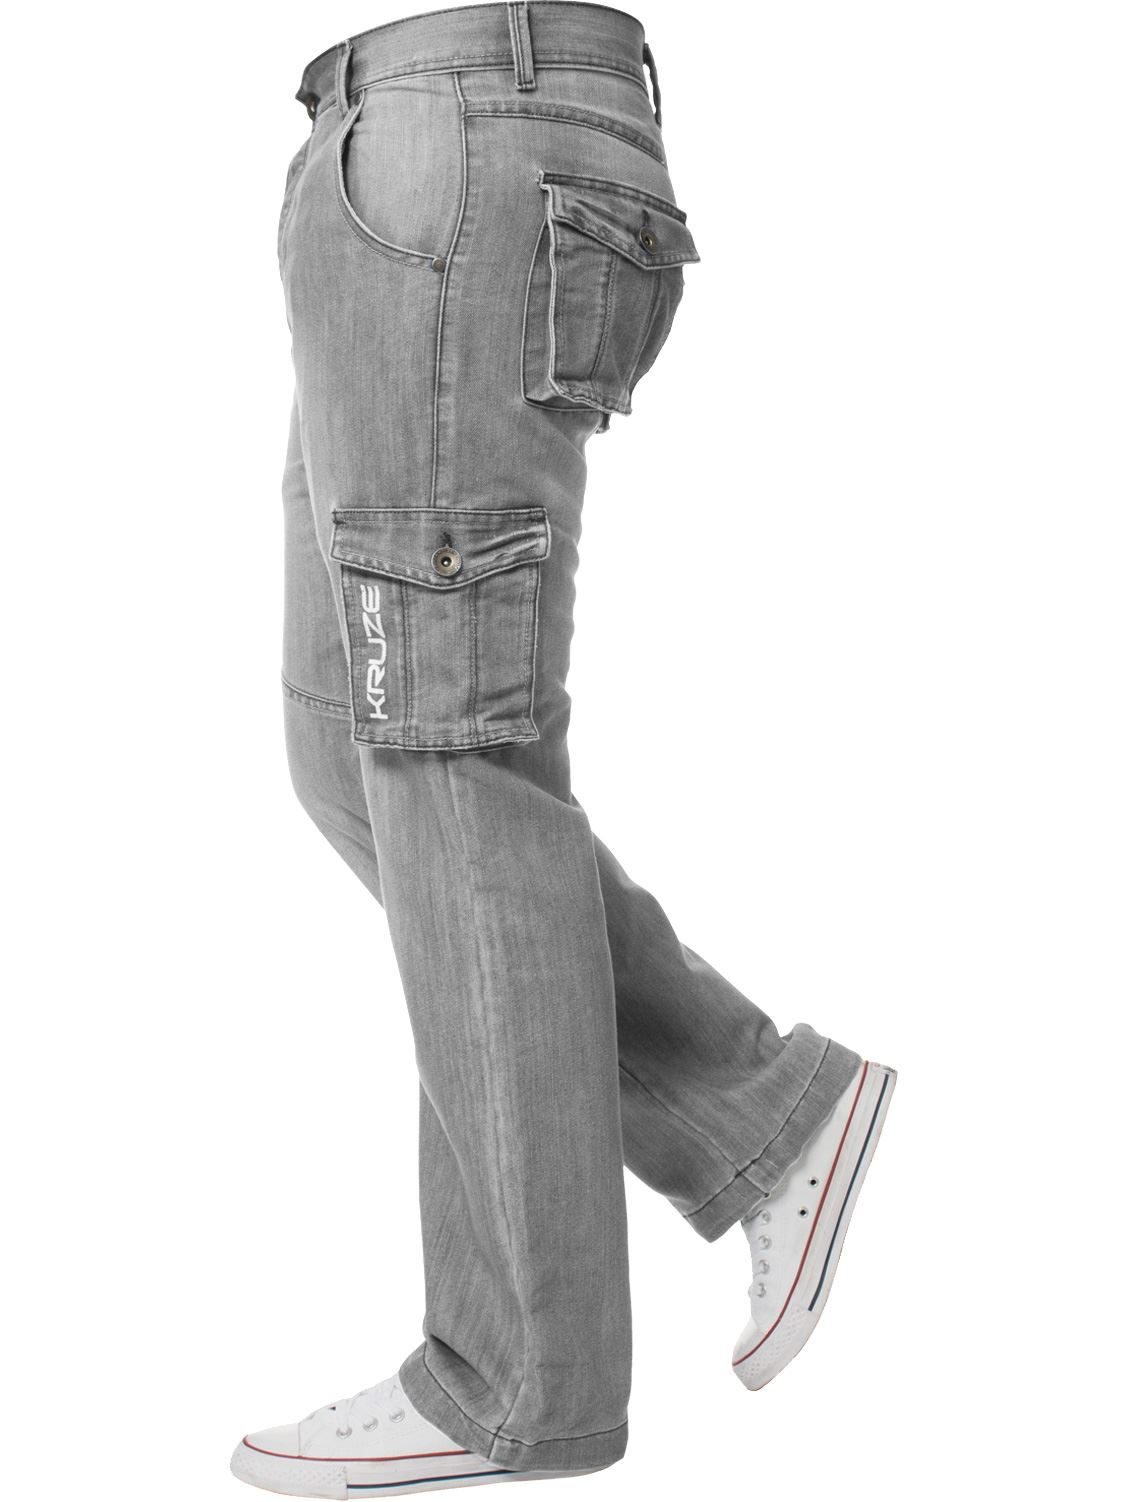 Kruze-Mens-Cargo-Combat-Jeans-Casual-Work-Denim-Pants-Big-Tall-All-Waist-Sizes thumbnail 30